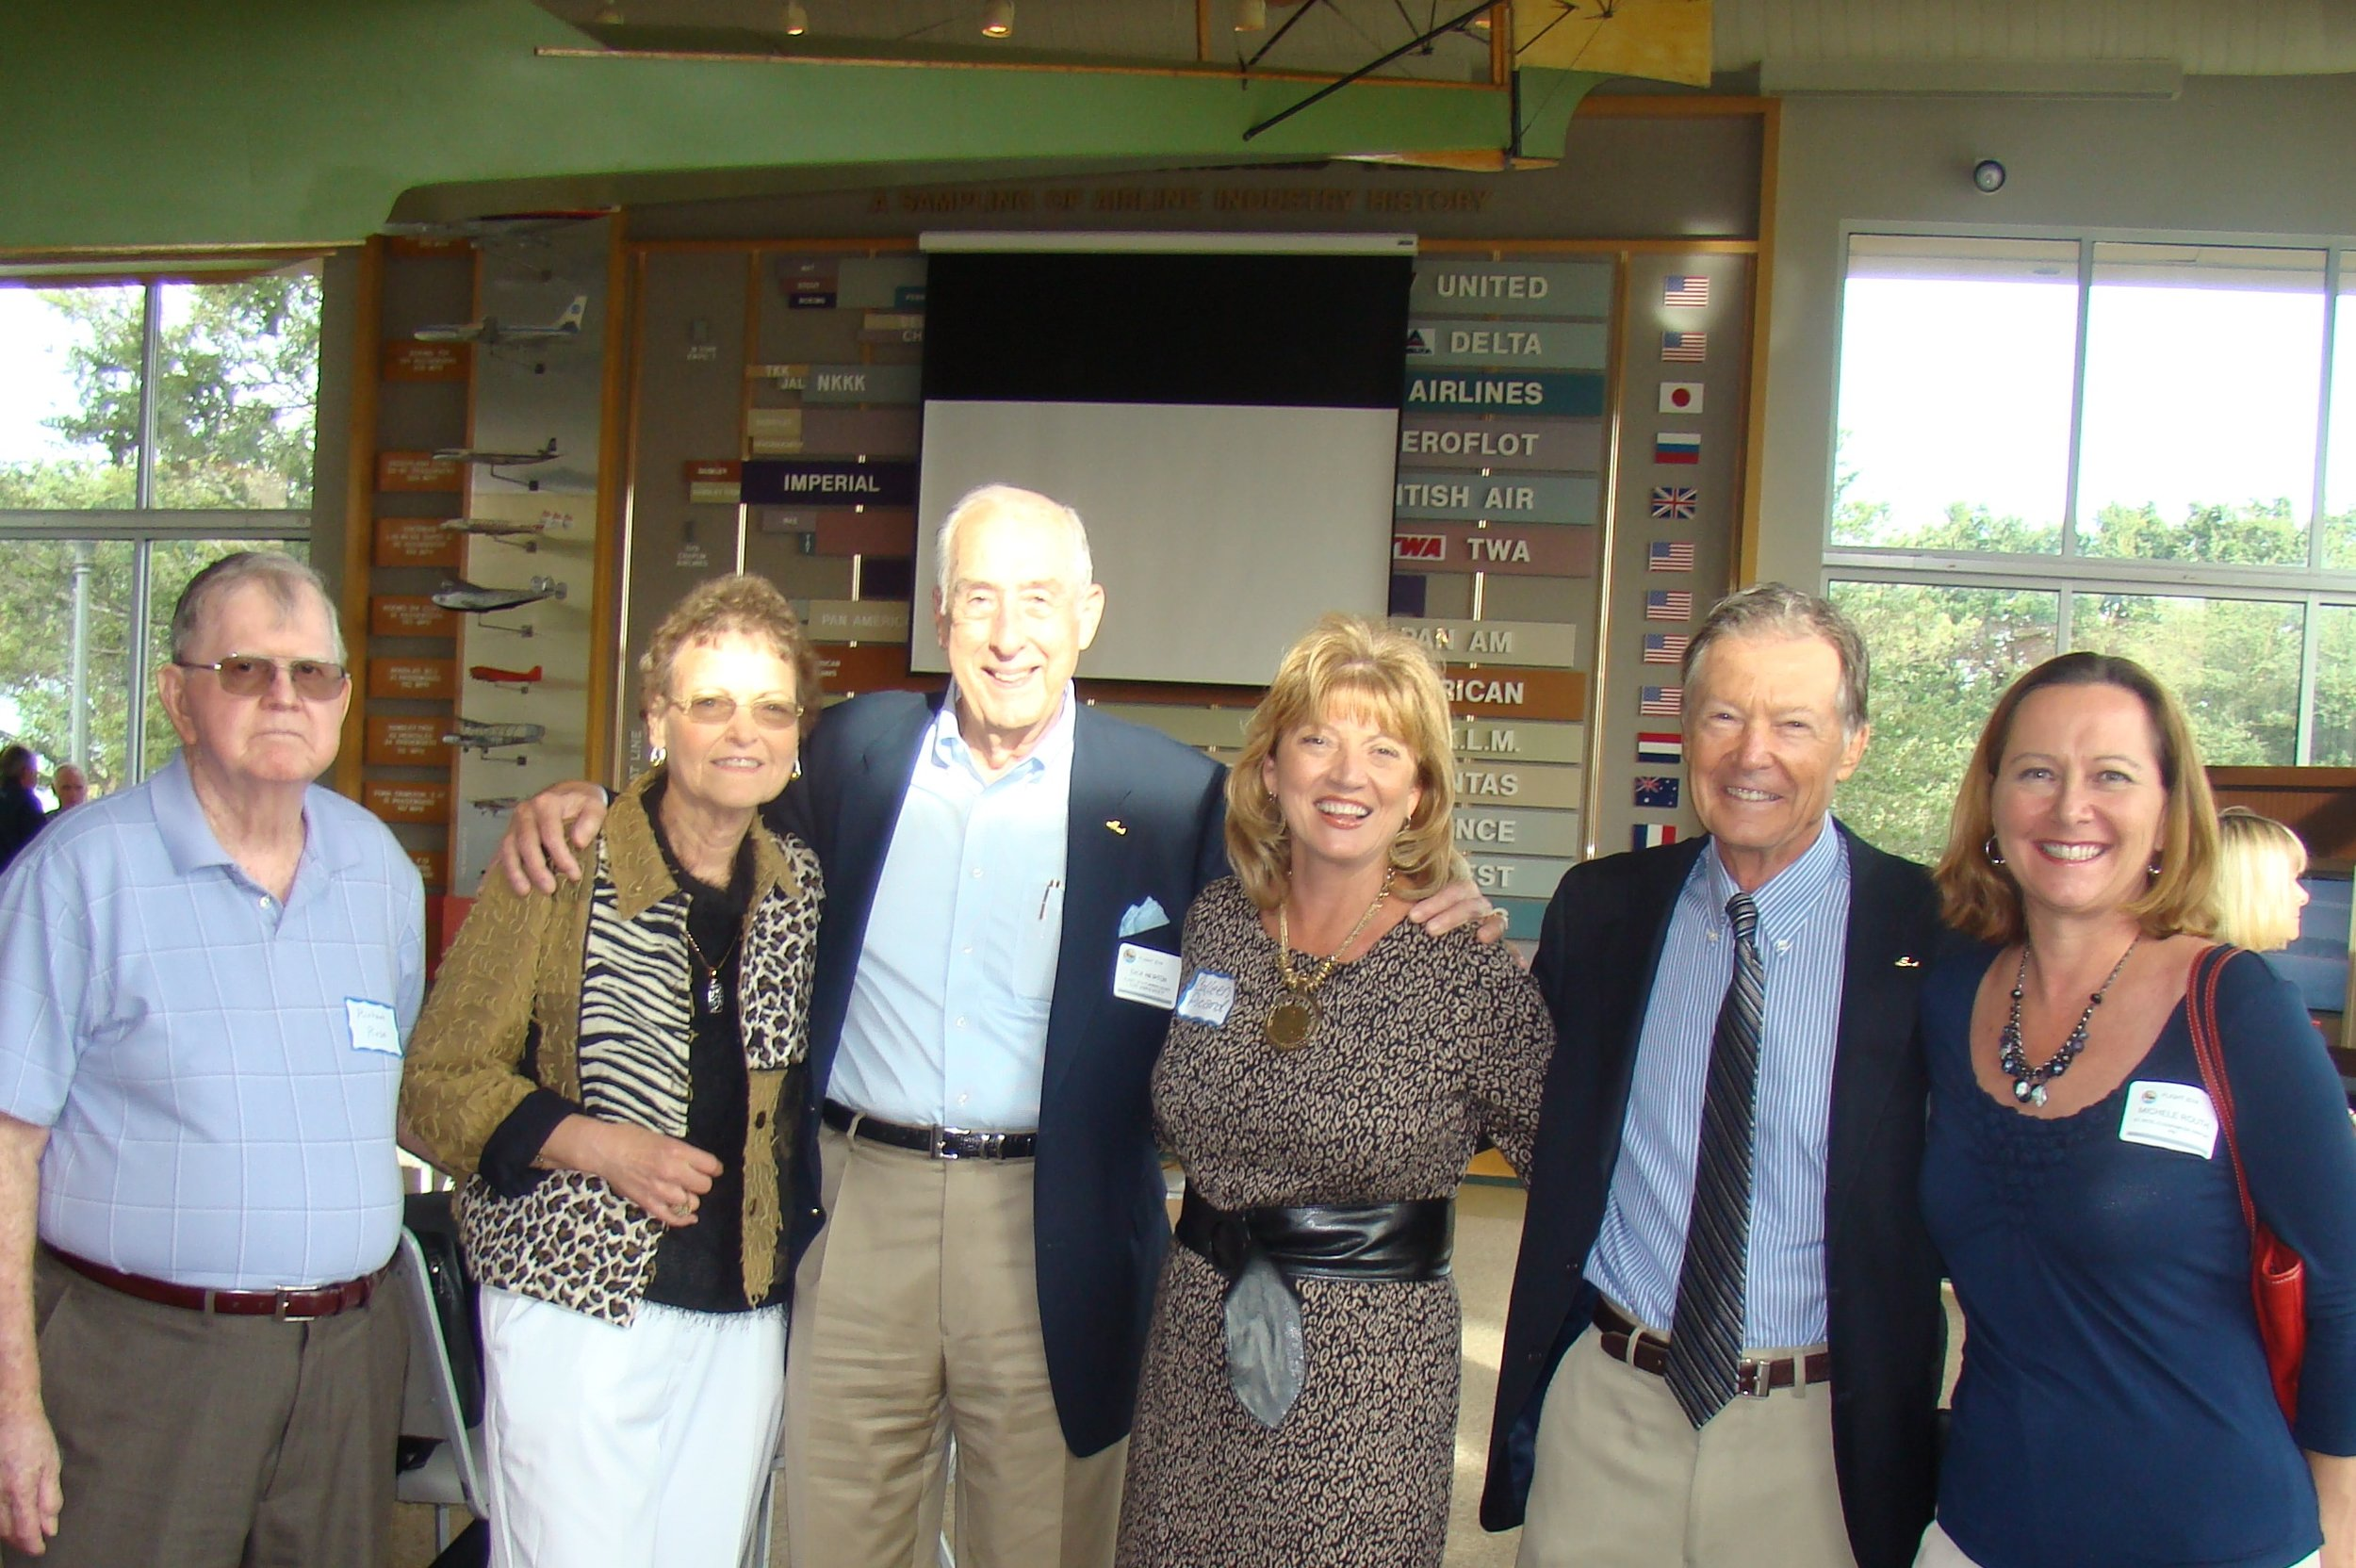 Richard Rose, Kim Michael, Dick Newton, Colleen Picard, Al Michejda & Michele Routh - 1, 24 Oct '13.JPG